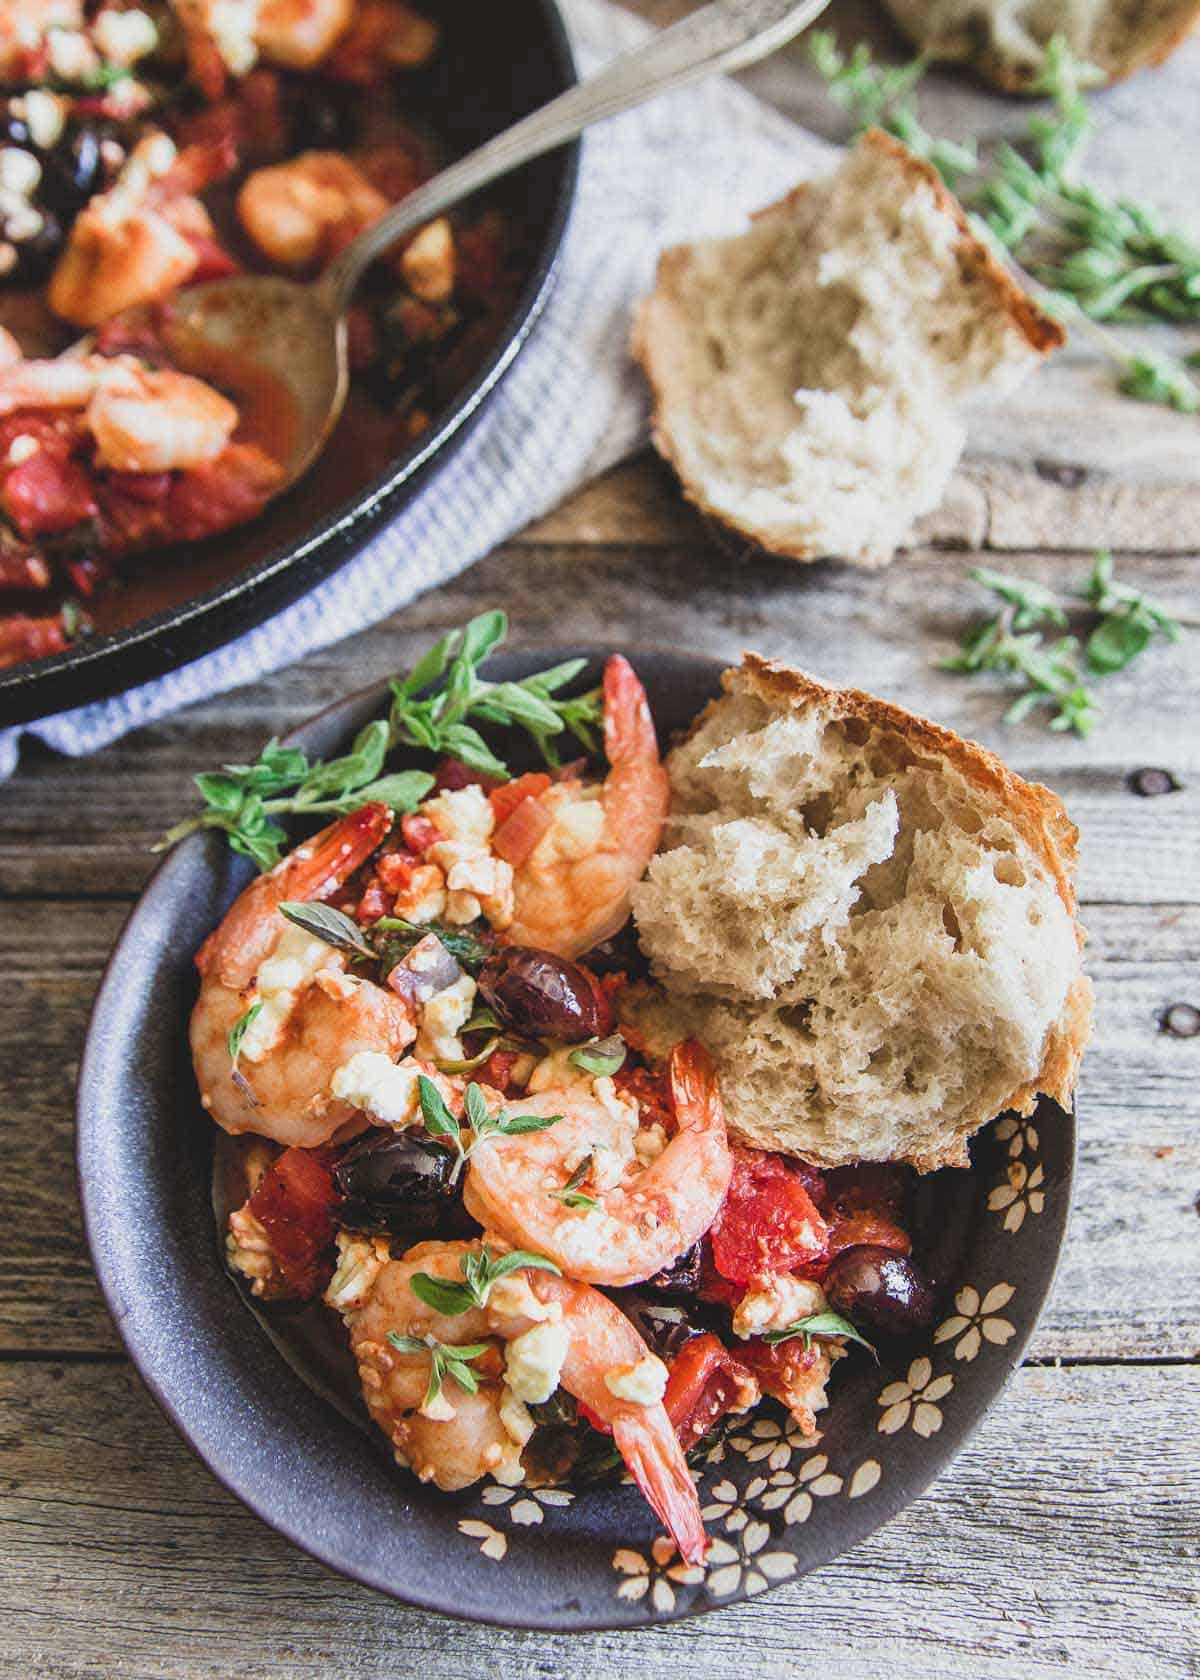 This Greek shrimp skillet is an easy 30 minute meal with tomatoes, spinach, Kalamata olives, feta and lots of fresh oregano and lemon flavor.